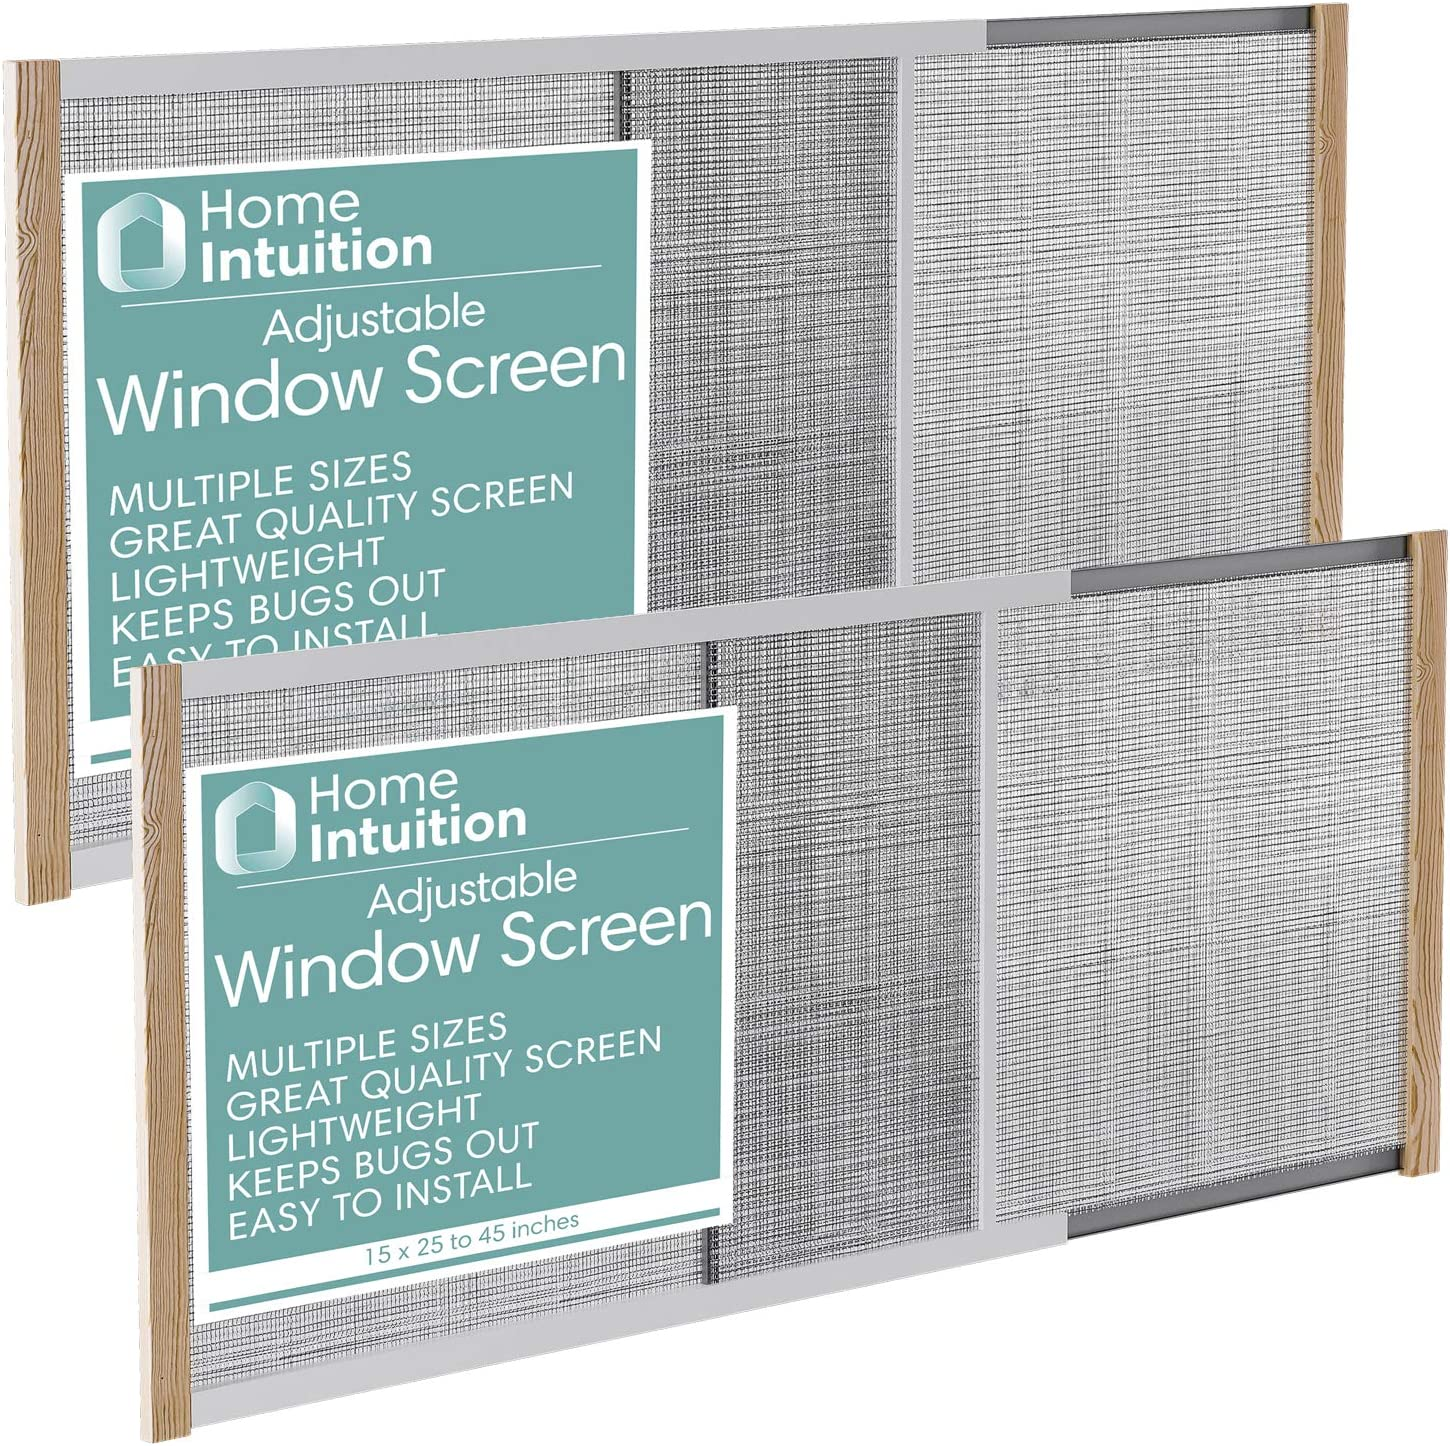 Home Intuition 2-Pack Adjustable Horizontal Window Screen 25-45 inches Wide, 15 Inches High